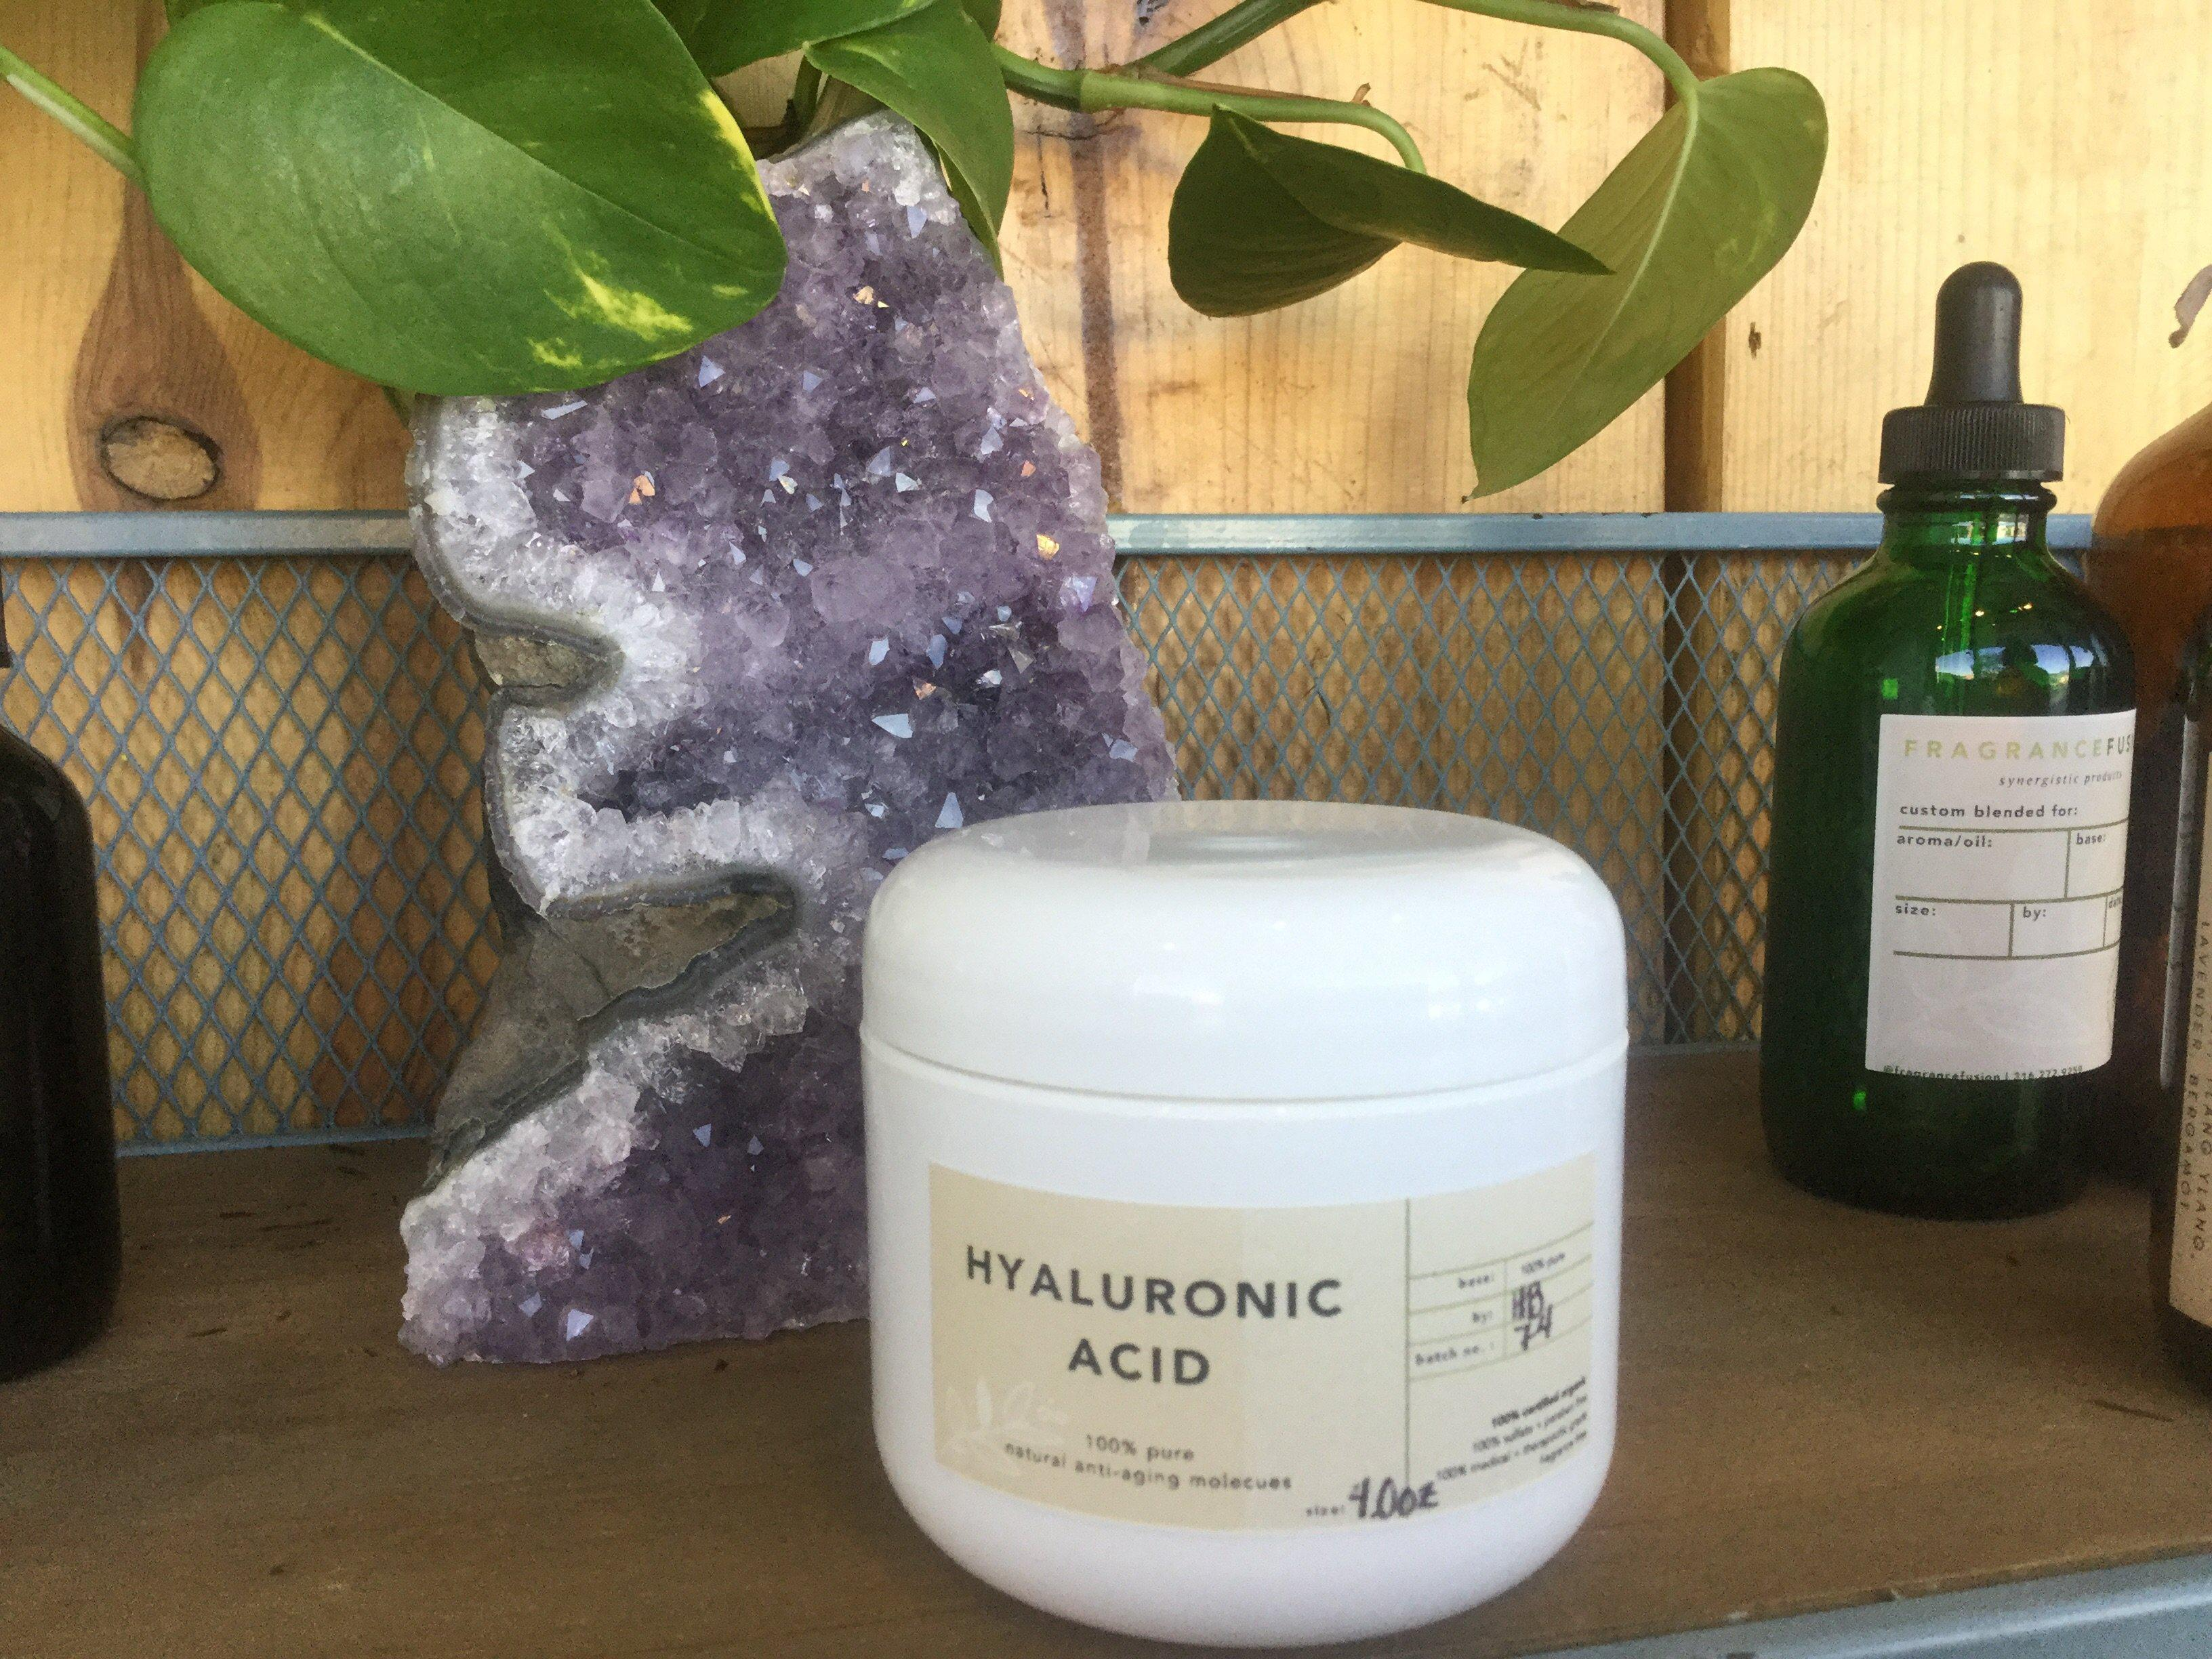 HYALURONIC ACID gel moisturizer